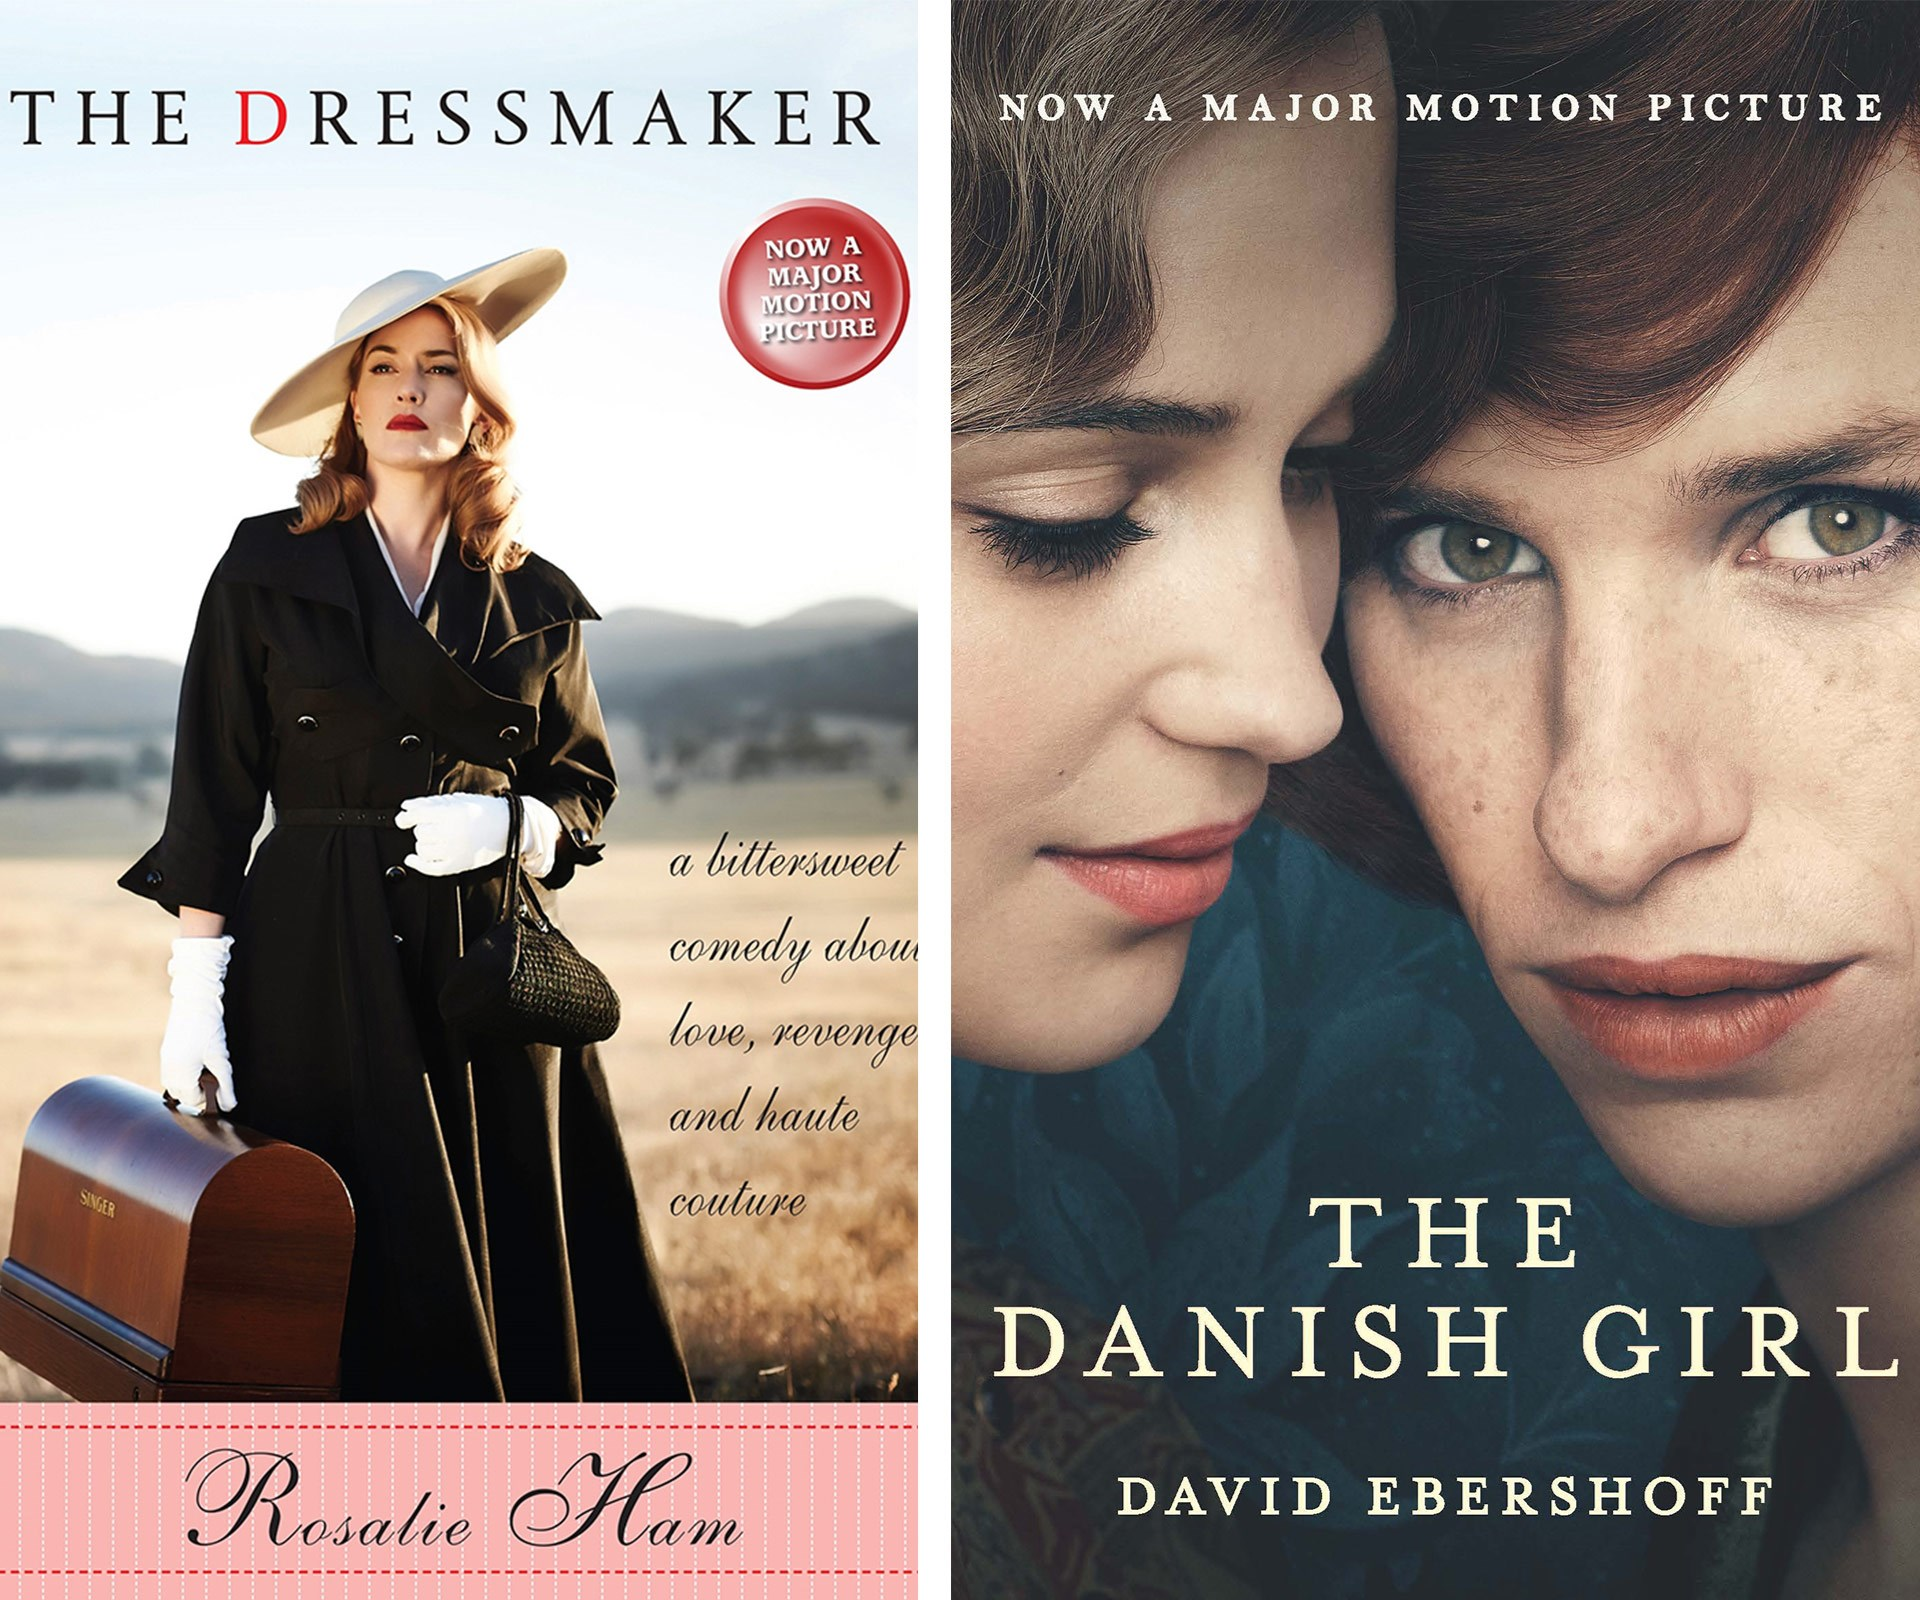 There has been some phenomenal movies out this year including, the new Australian classing, *The Dressmaker* and *The Danish Girl*. But did you know the films were based on bestselling novels? Both would be perfect for mum!